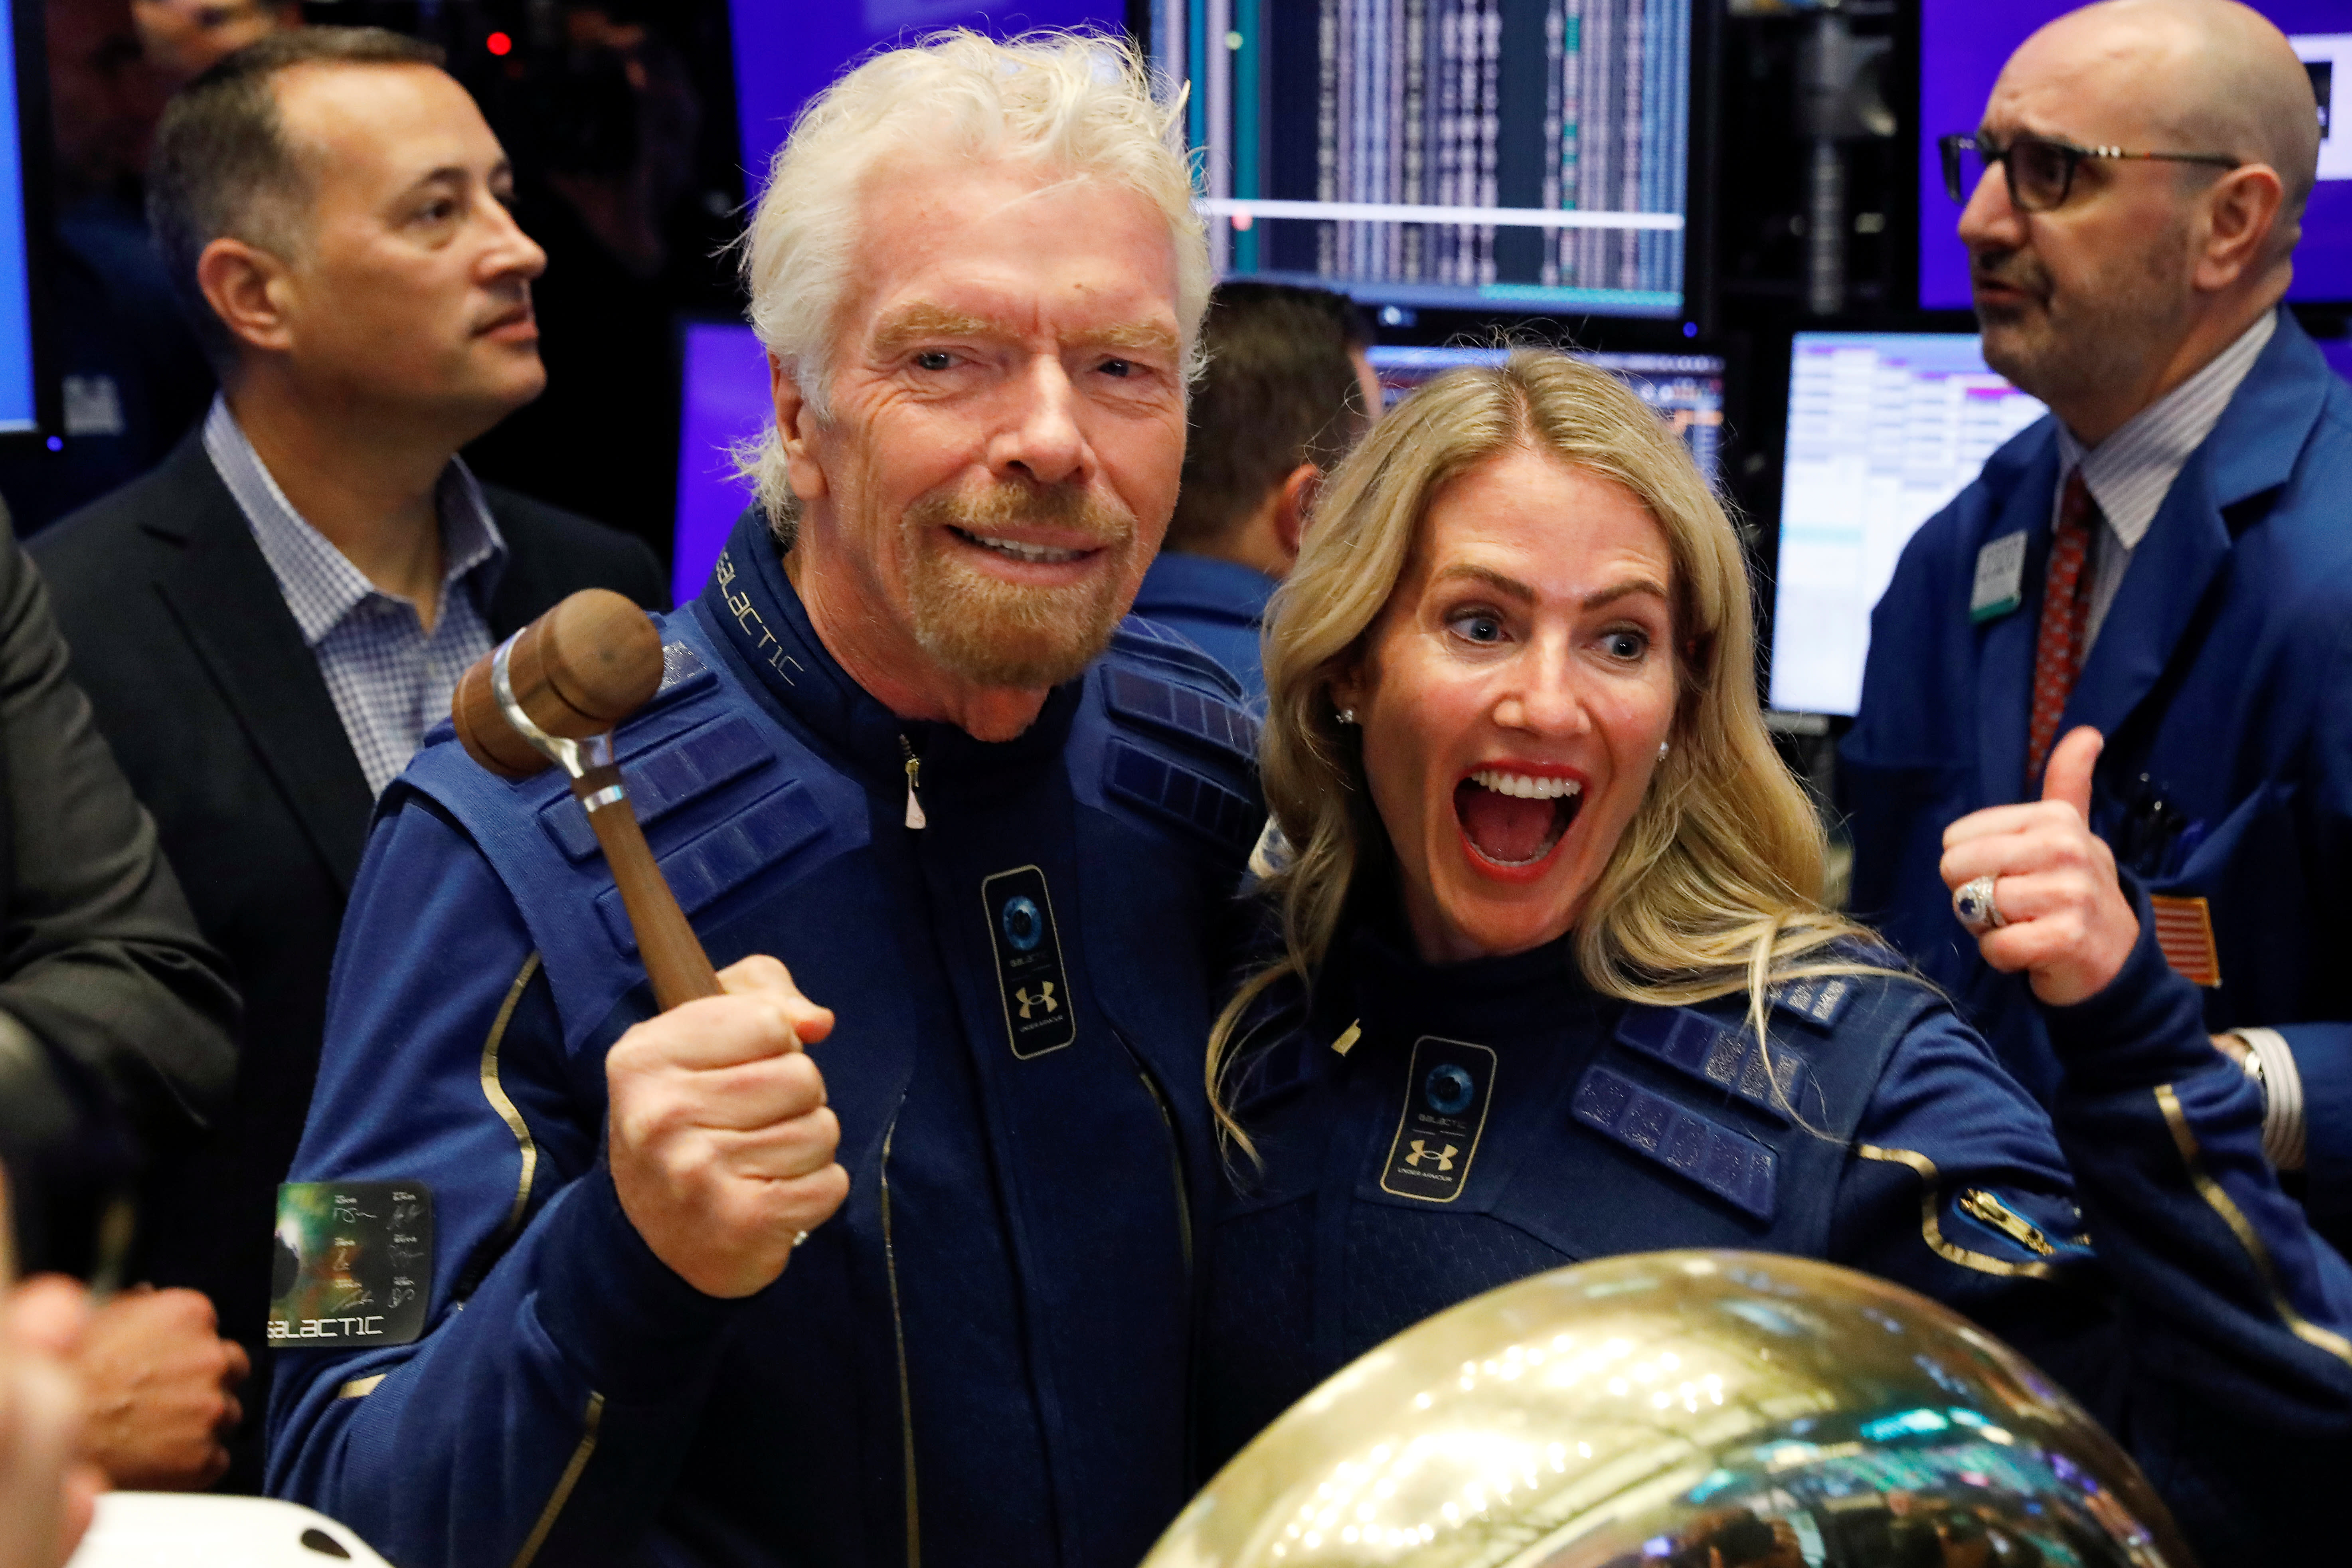 Stocks making the biggest moves midday: Virgin Galactic, Canopy Growth, Wingstop, Qorvo & more